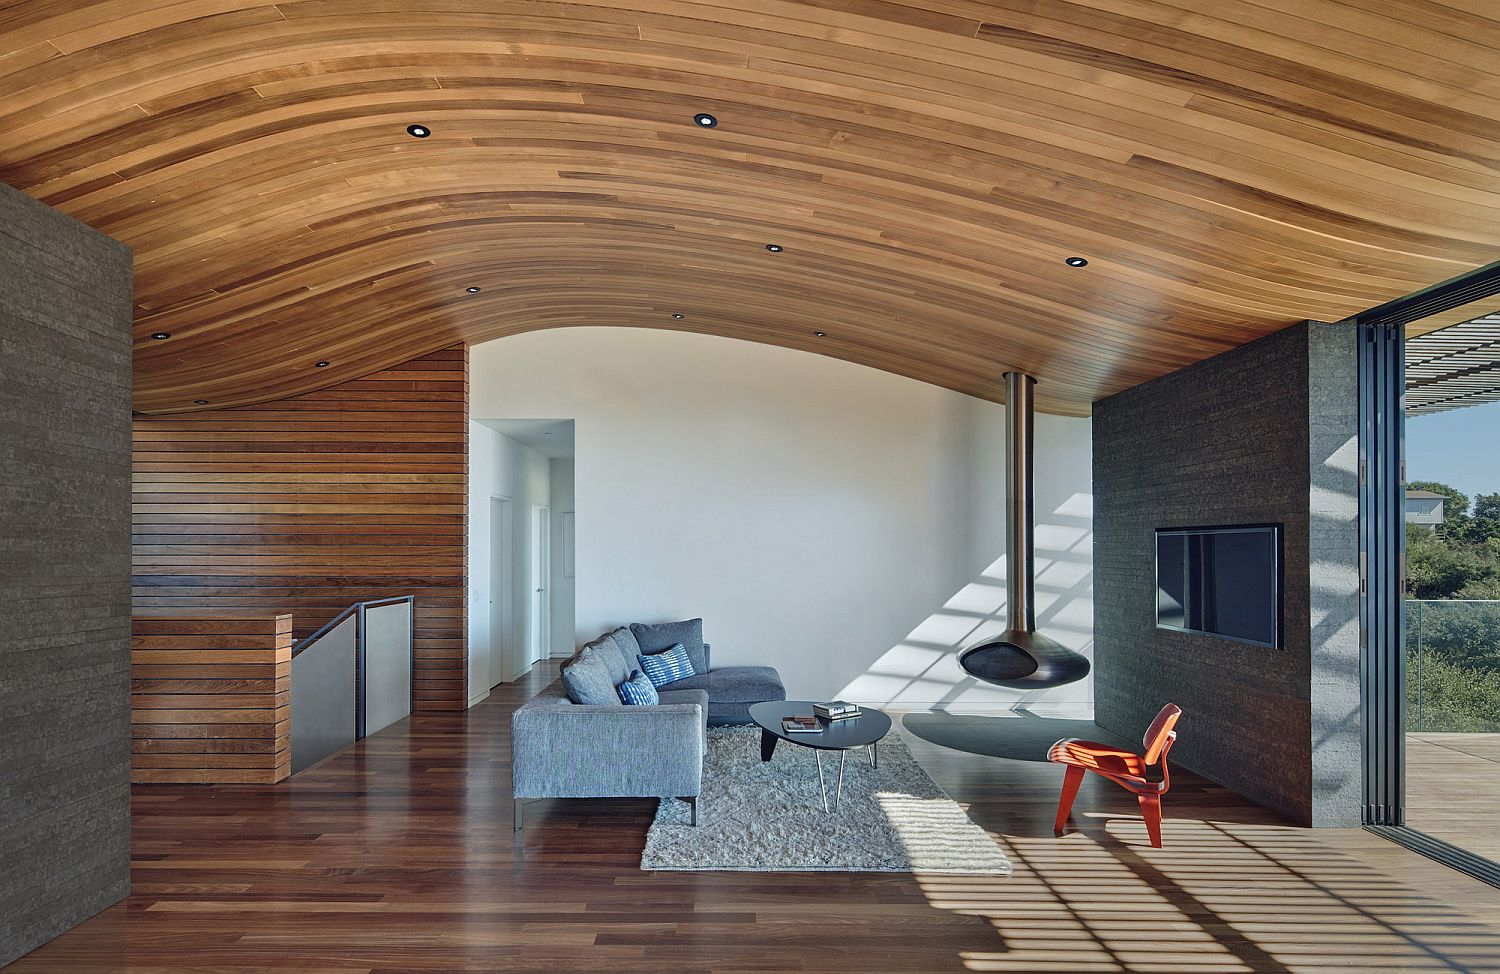 Curved wooden ceiling steals the show at this mountaintop residence